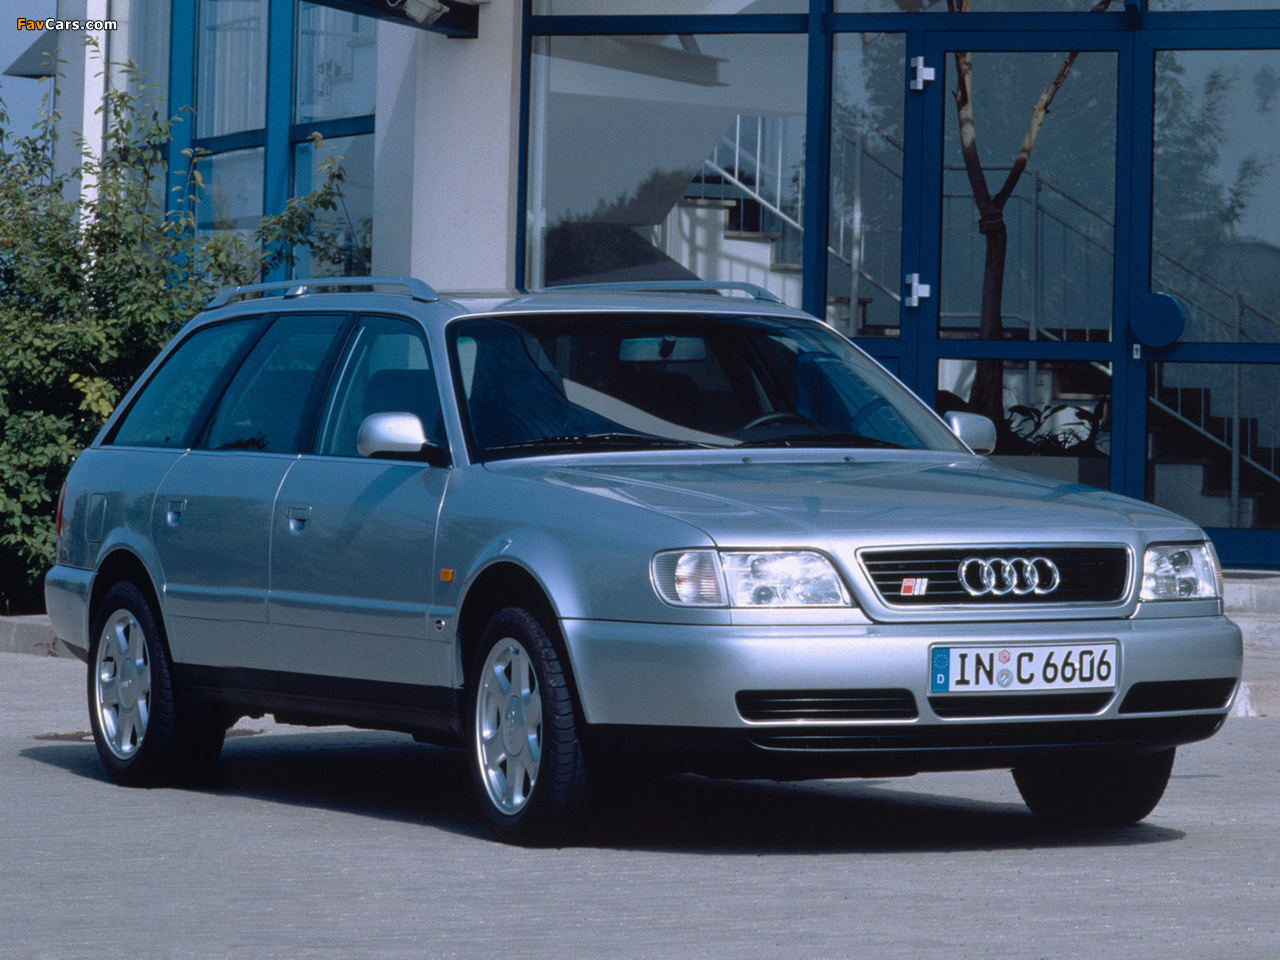 Audi S6 Avant 4a C4 1994 97 Wallpapers 1280x960